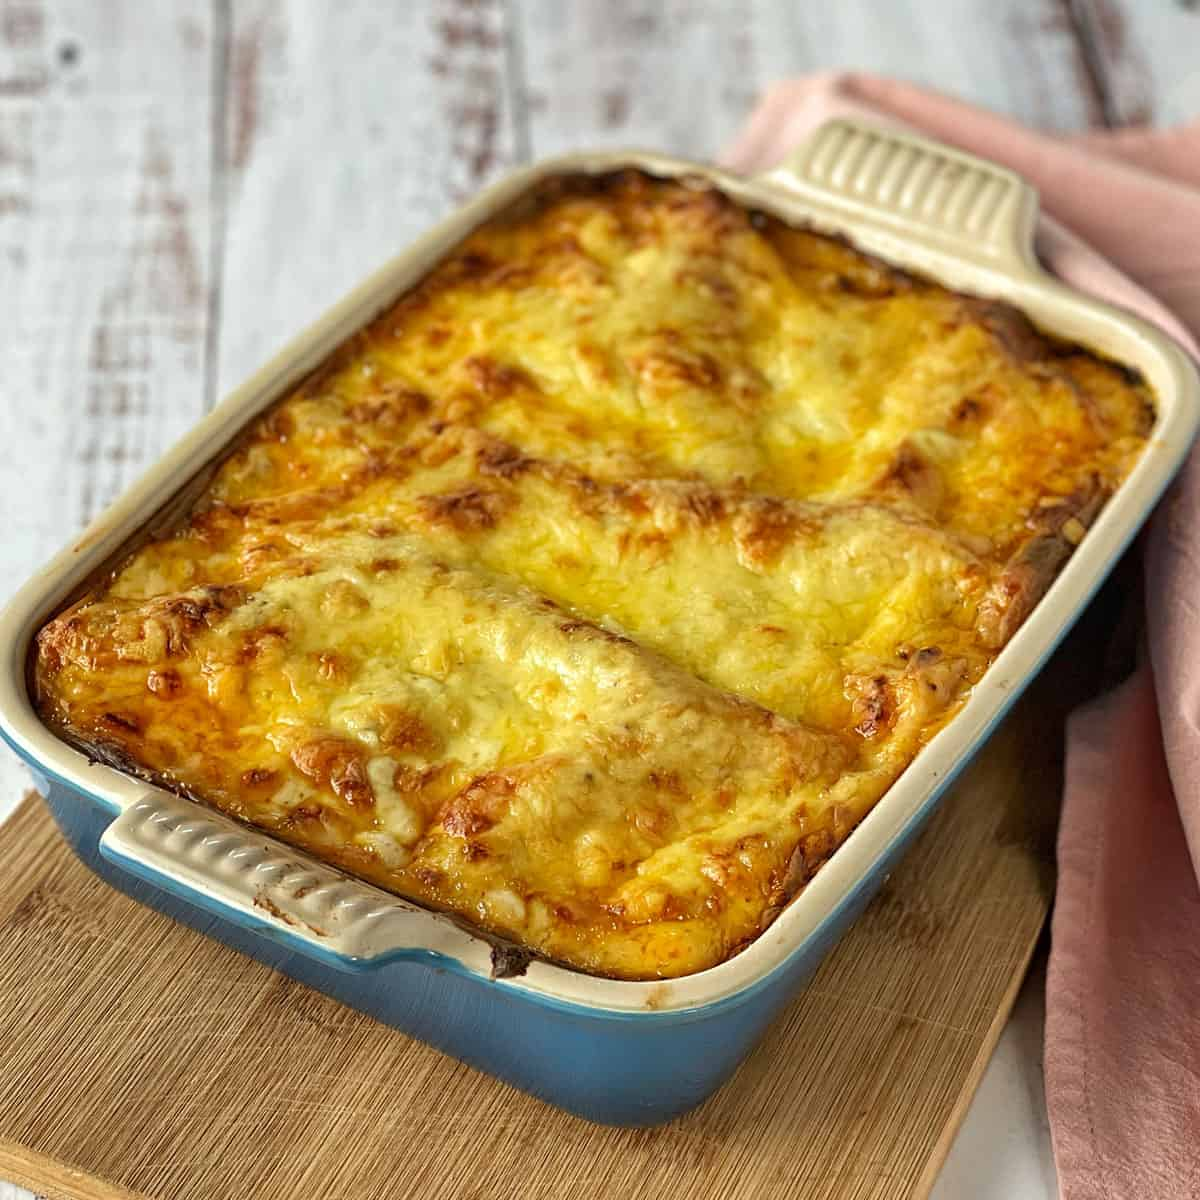 Cooked lasagne in a dish on a wooden board.